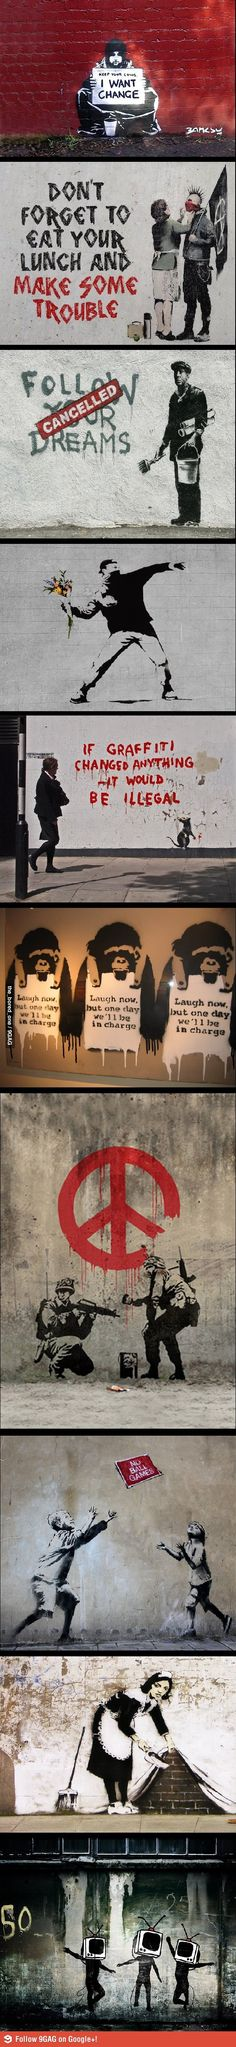 Awesome Banksy